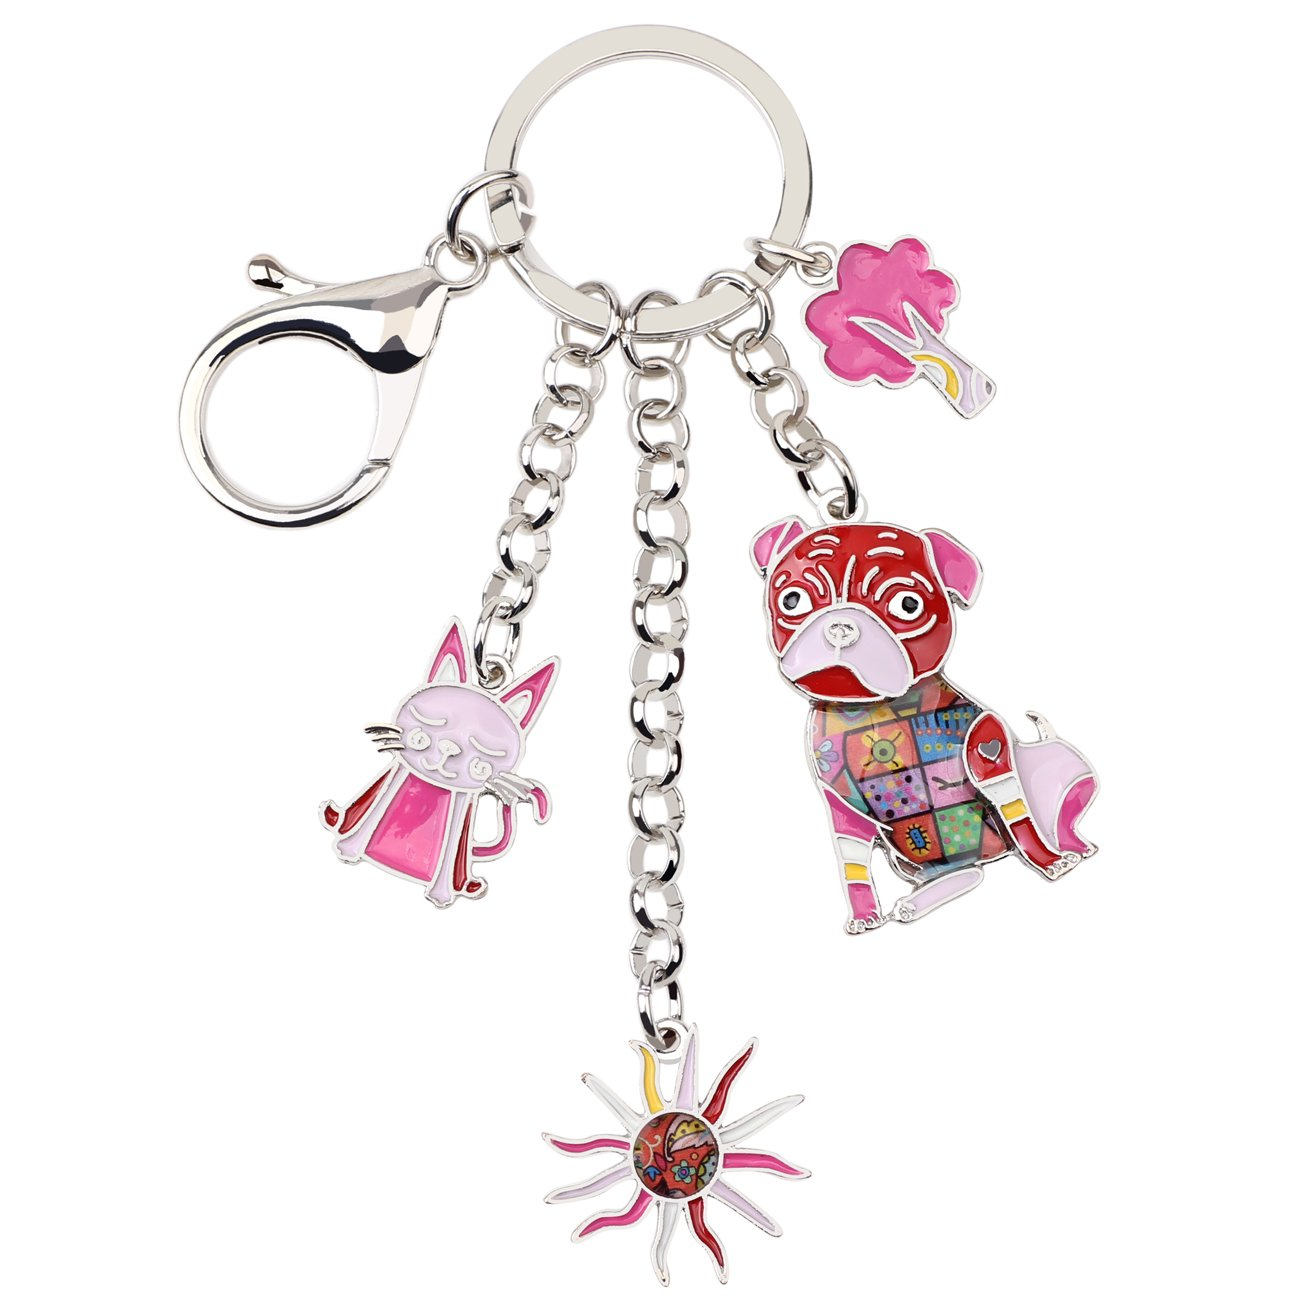 Bonsny Enamel Alloy Cat Sunflower Pug Dog Key Chains For Women Car Purse bag Charms Jewelry Gifts (Red)